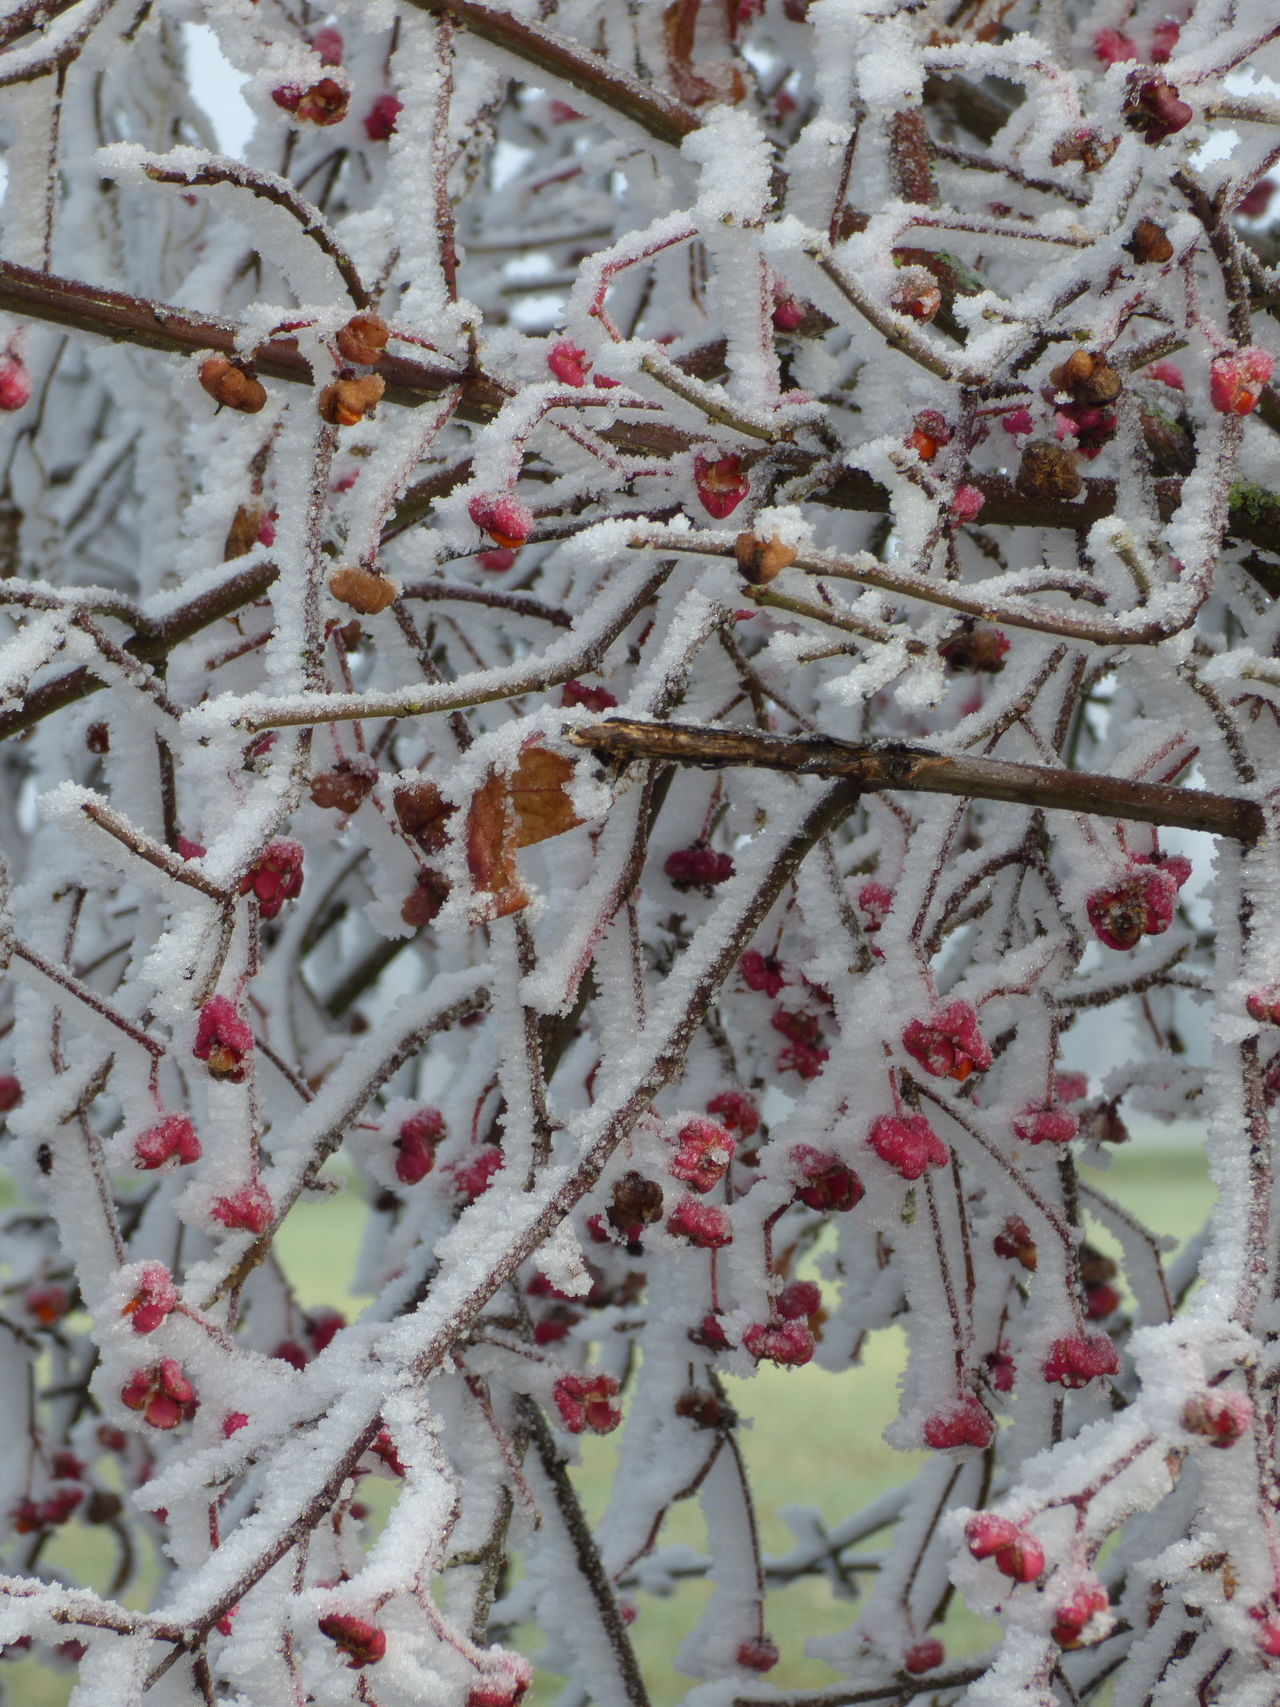 Frozen fruits Beauty In Nature Branch Close-up Cold Temperature Colours Day Frost Frozen Growth Ice Nature No People Outdoors Red Rose Hip Rowanberry Snow Tree Weather Winter